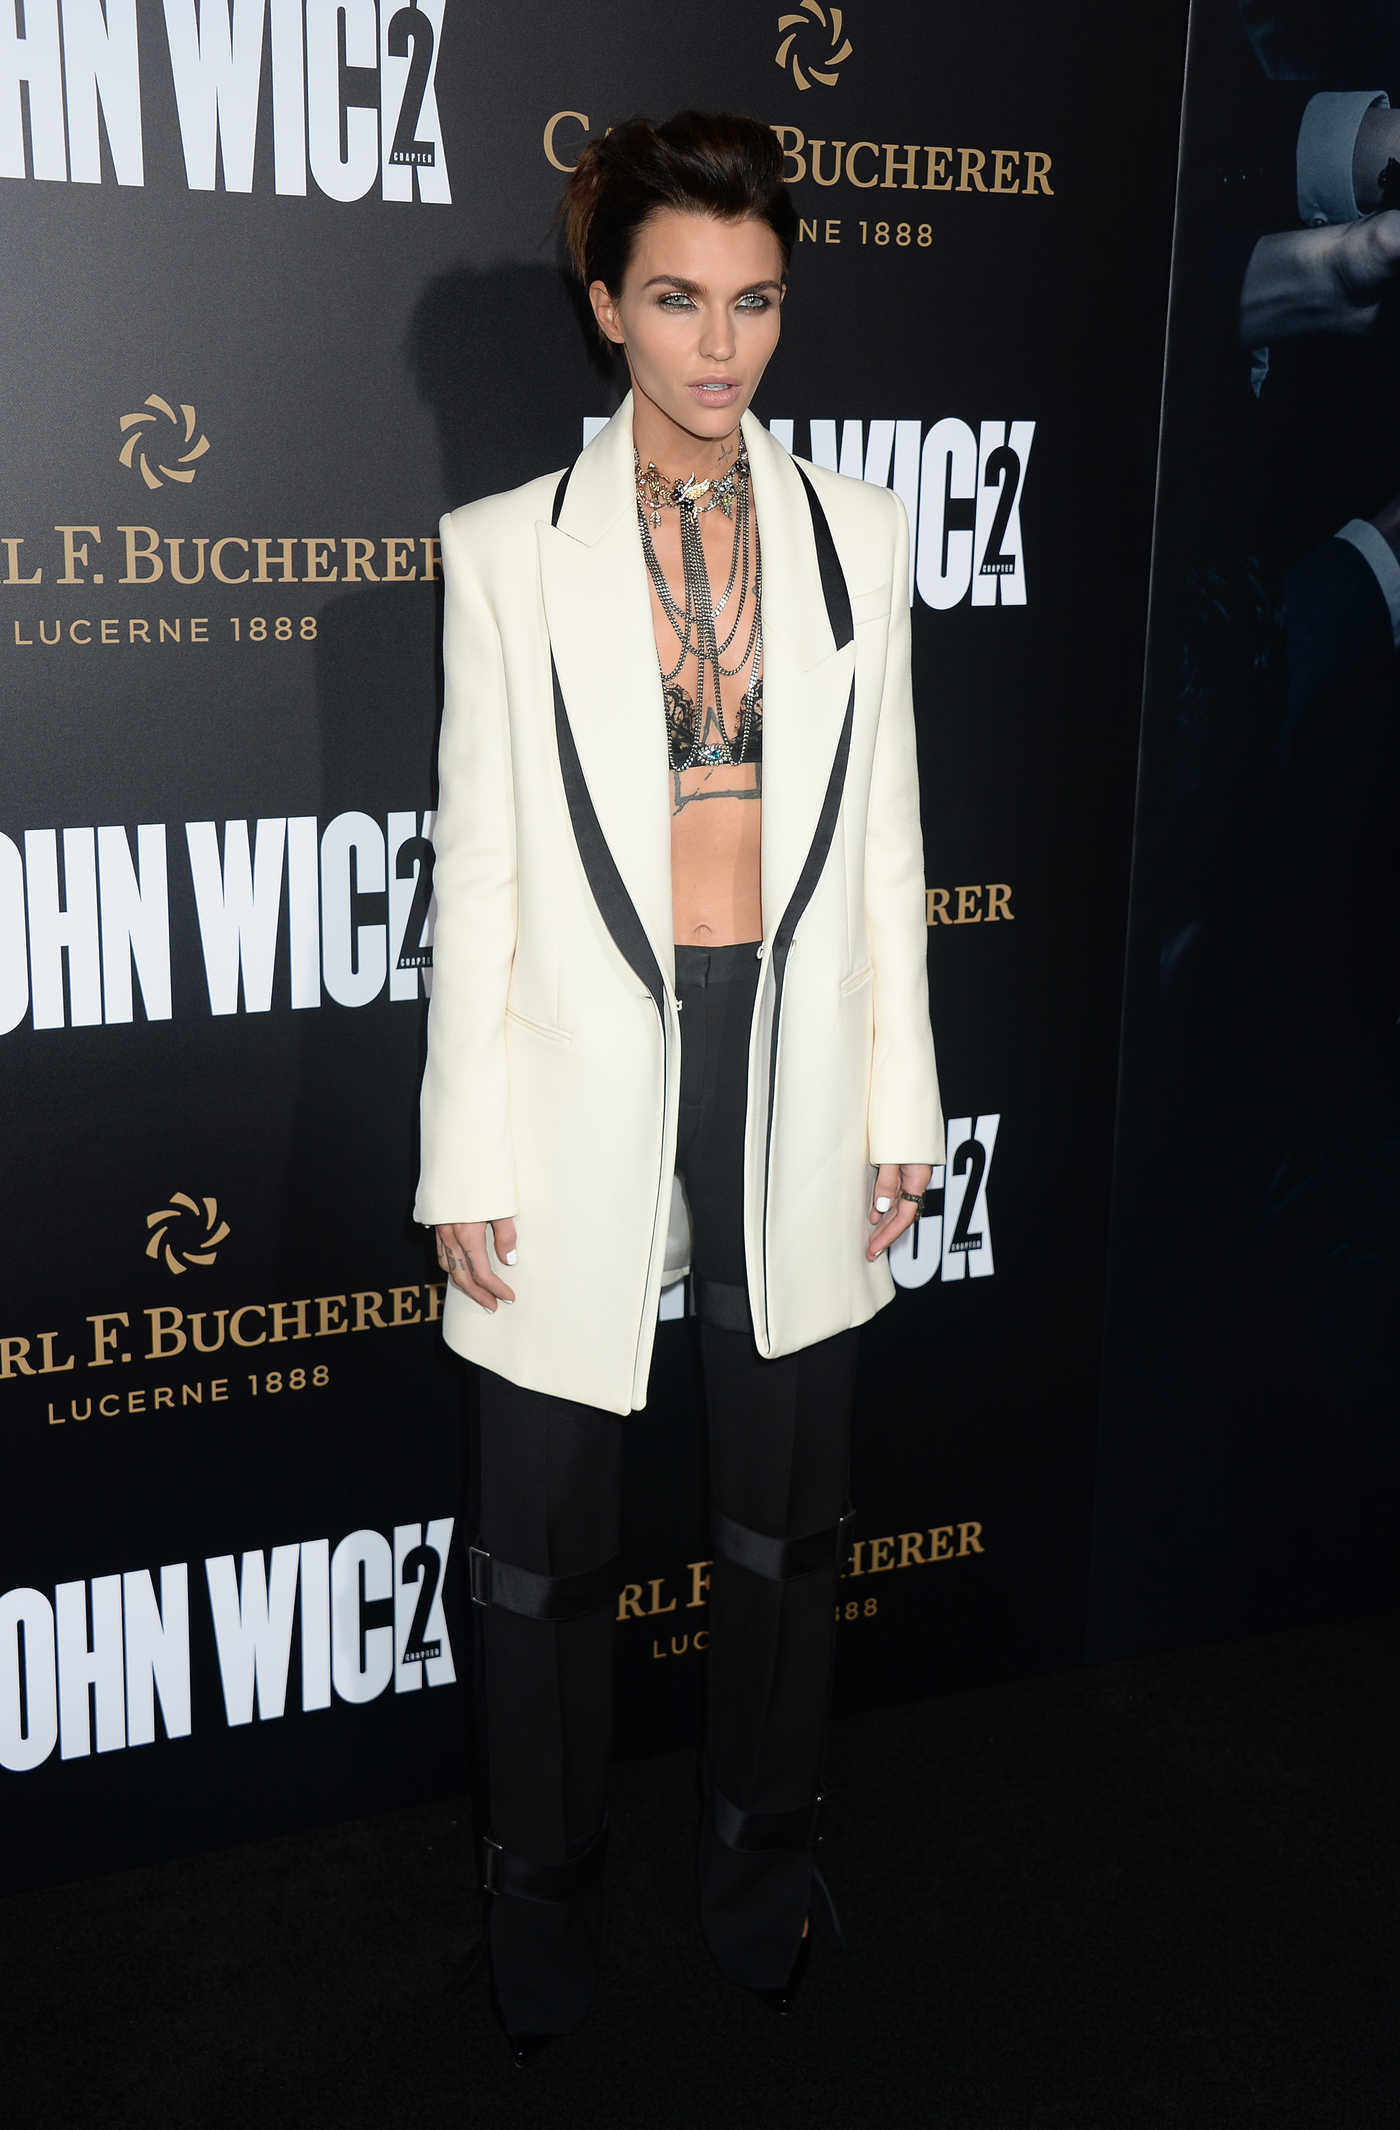 Ruby Rose at the John Wick: Chapter 2 Premiere in Los Angeles 01/30/2017